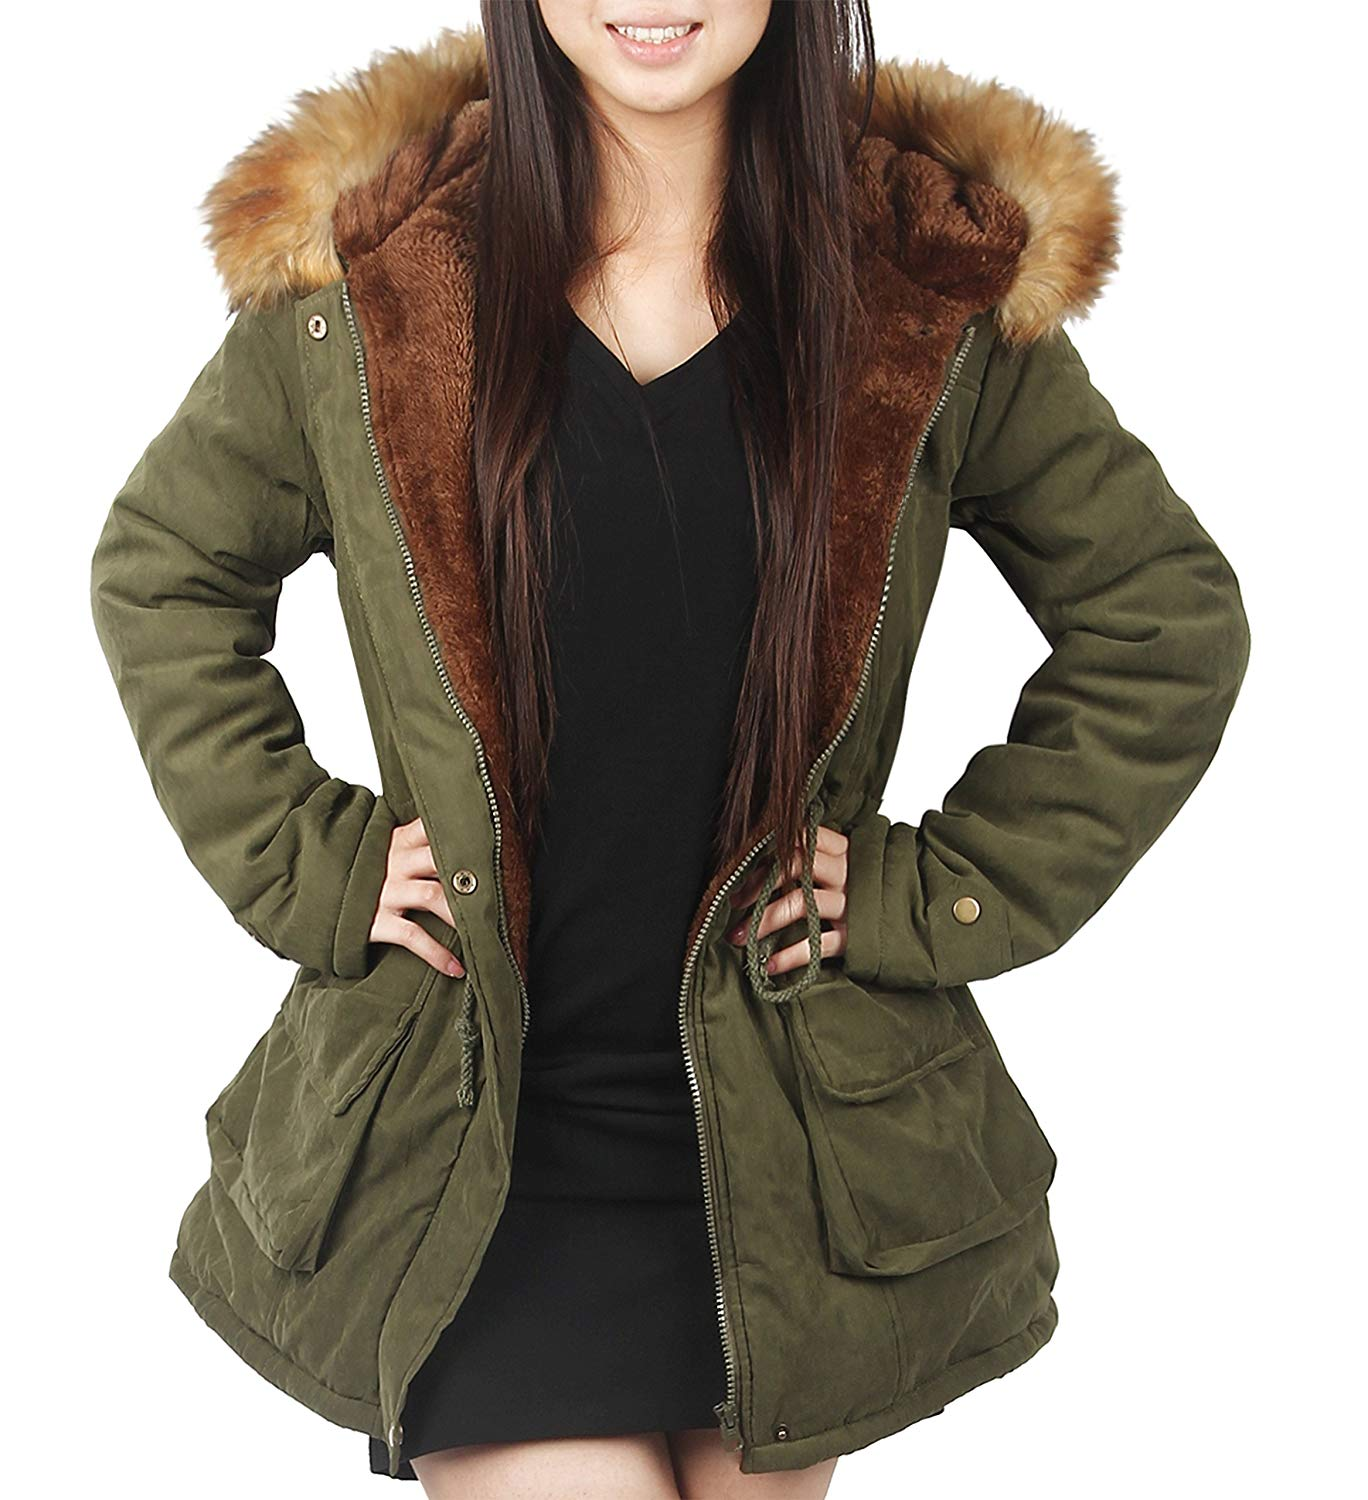 Jackets with Fur for winter 4how womens parka jacket hooded winter coats faux fur outdoor coat at  amazon RHPYKNH